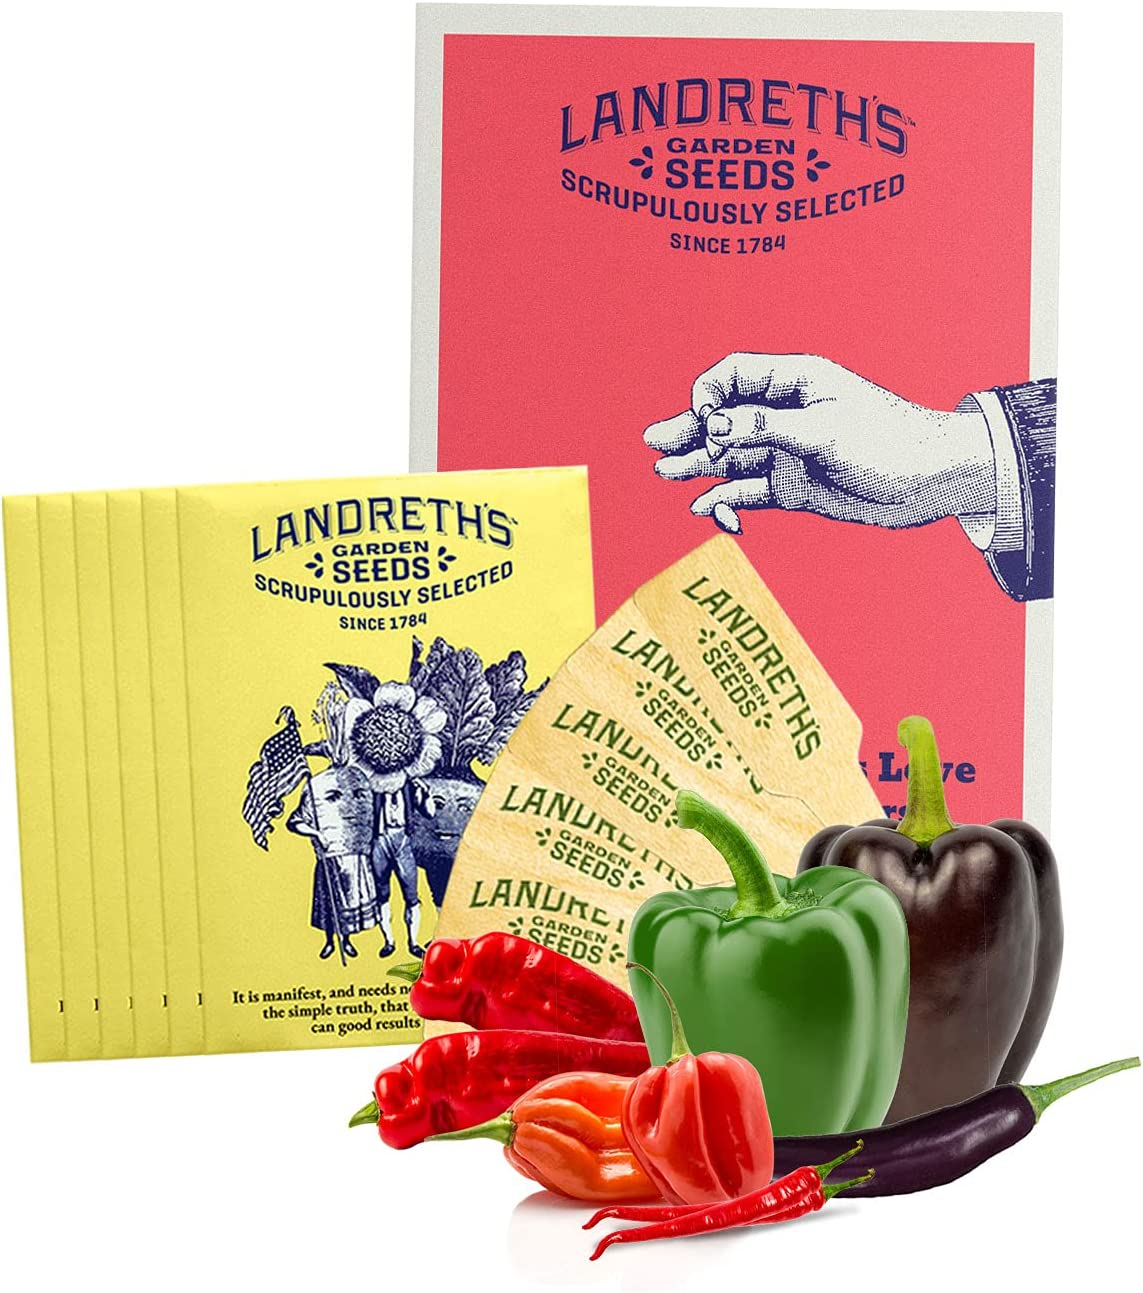 Landreth's Heirloom Vegetable Seed Starter Kit Bundle - Sweet and Spicy Hot Peppers 6 Variety Pack - Non-GMO Easy to Grow Kit for Planting Outdoors Garden Seed Collection with Guide